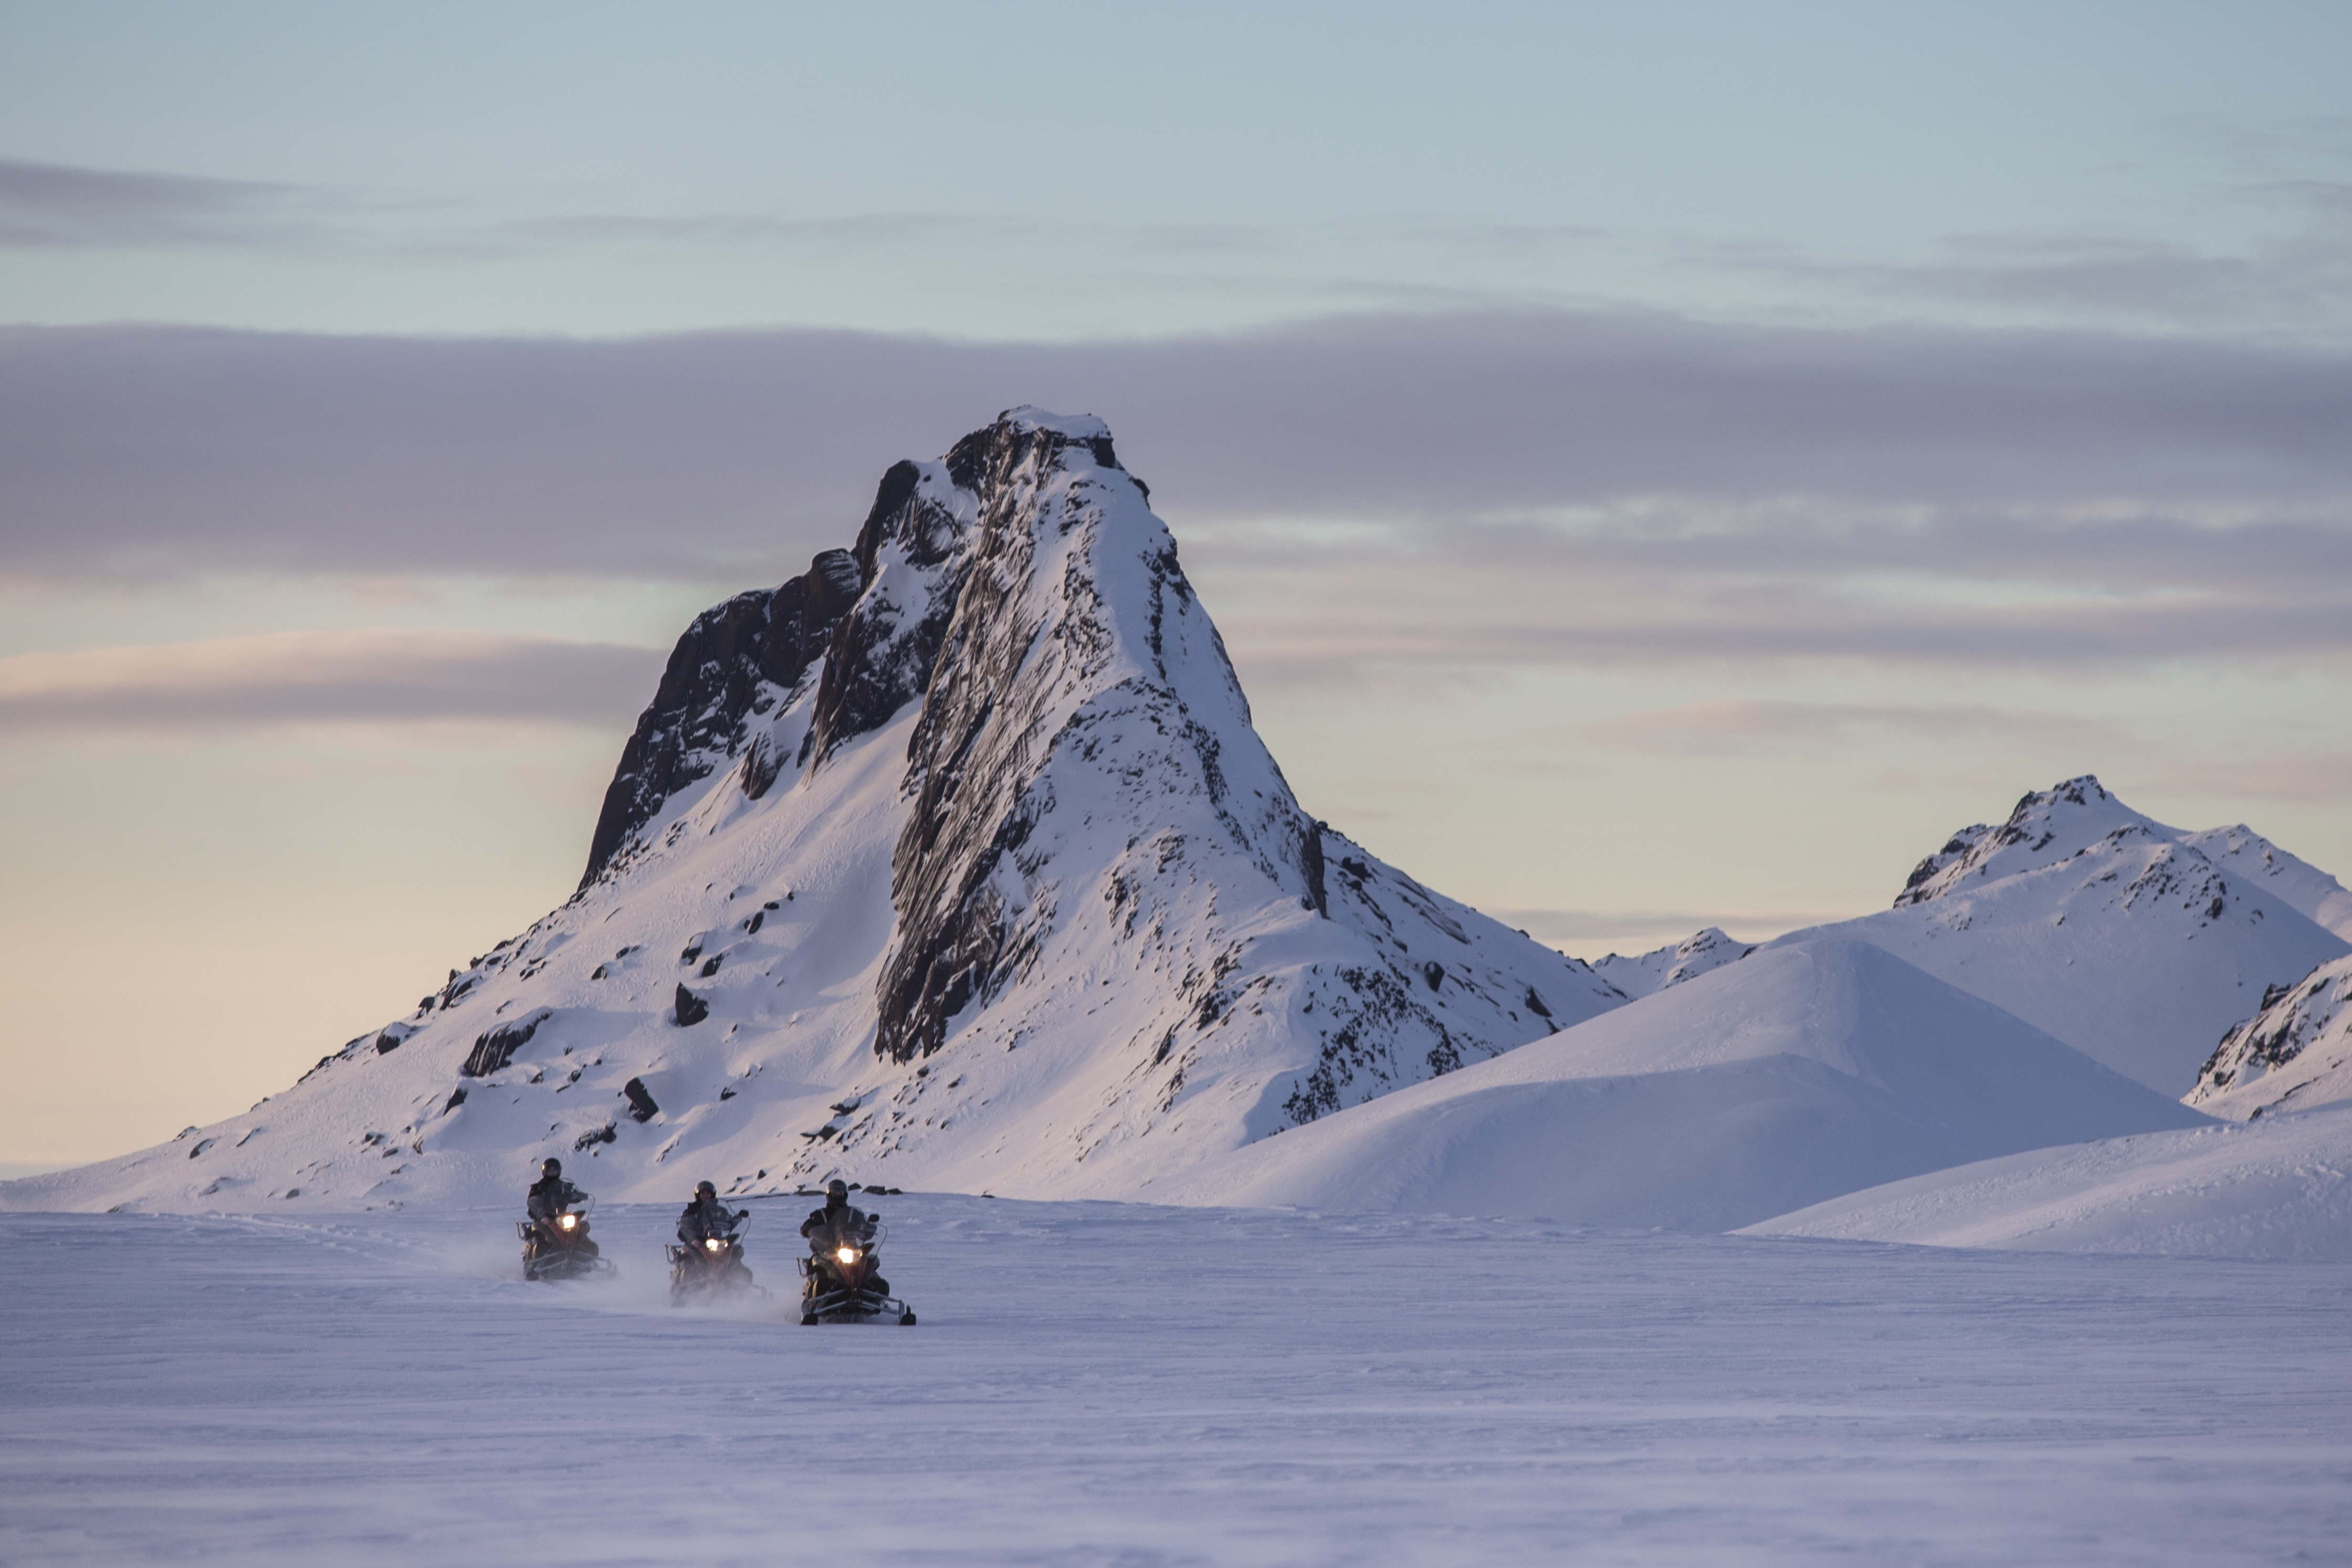 Ride on the snowmobile across the glacier.